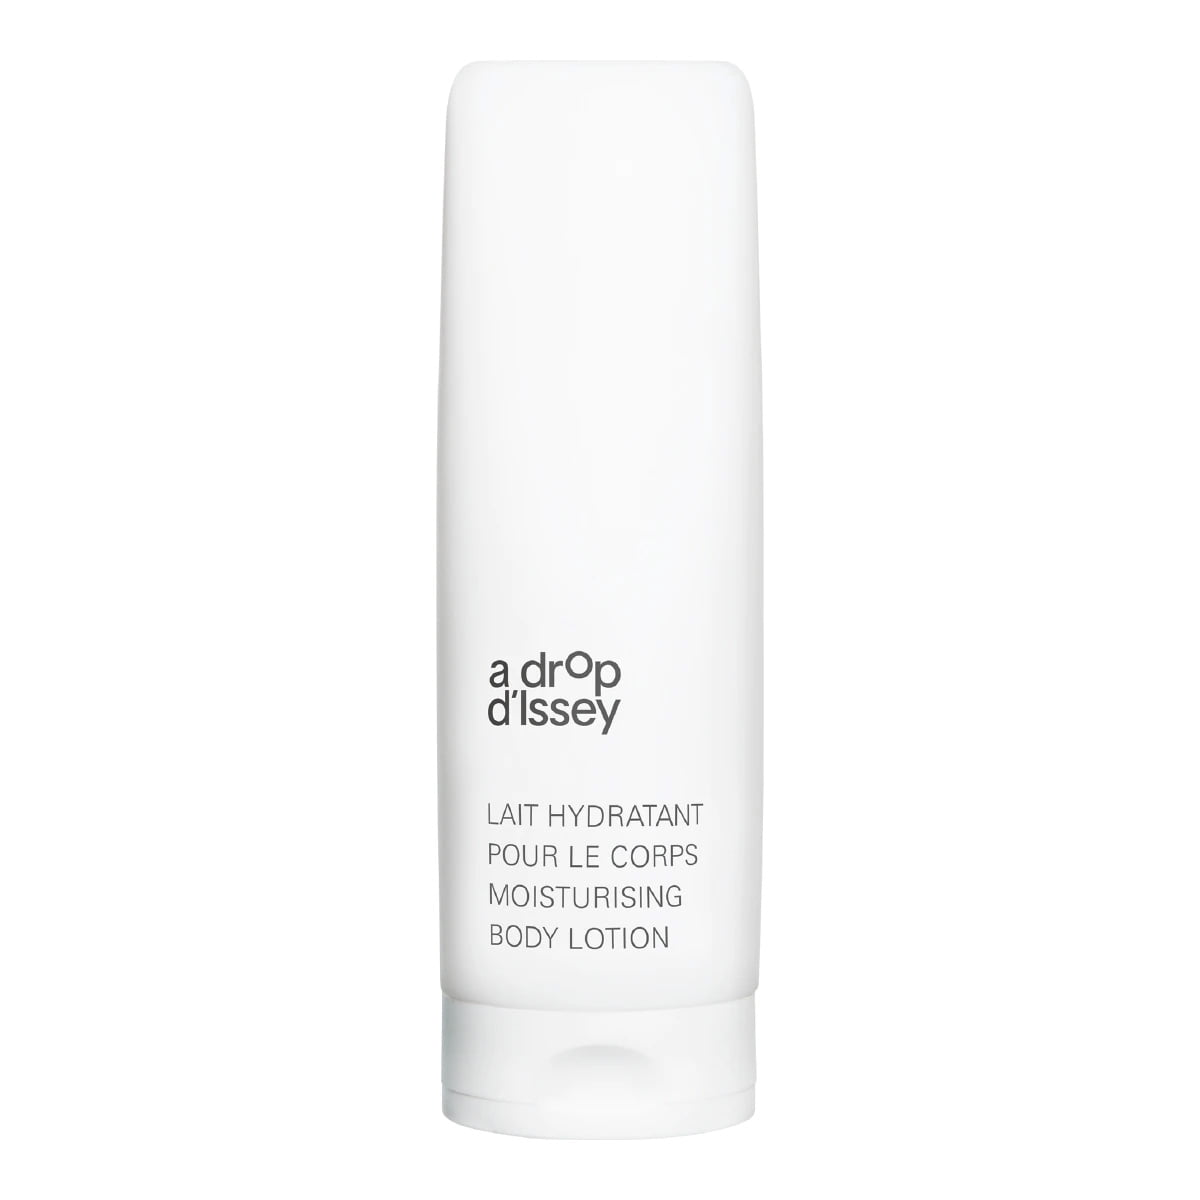 Issey Miyake - a drop d'Issey - Lait hydratant pour le corps